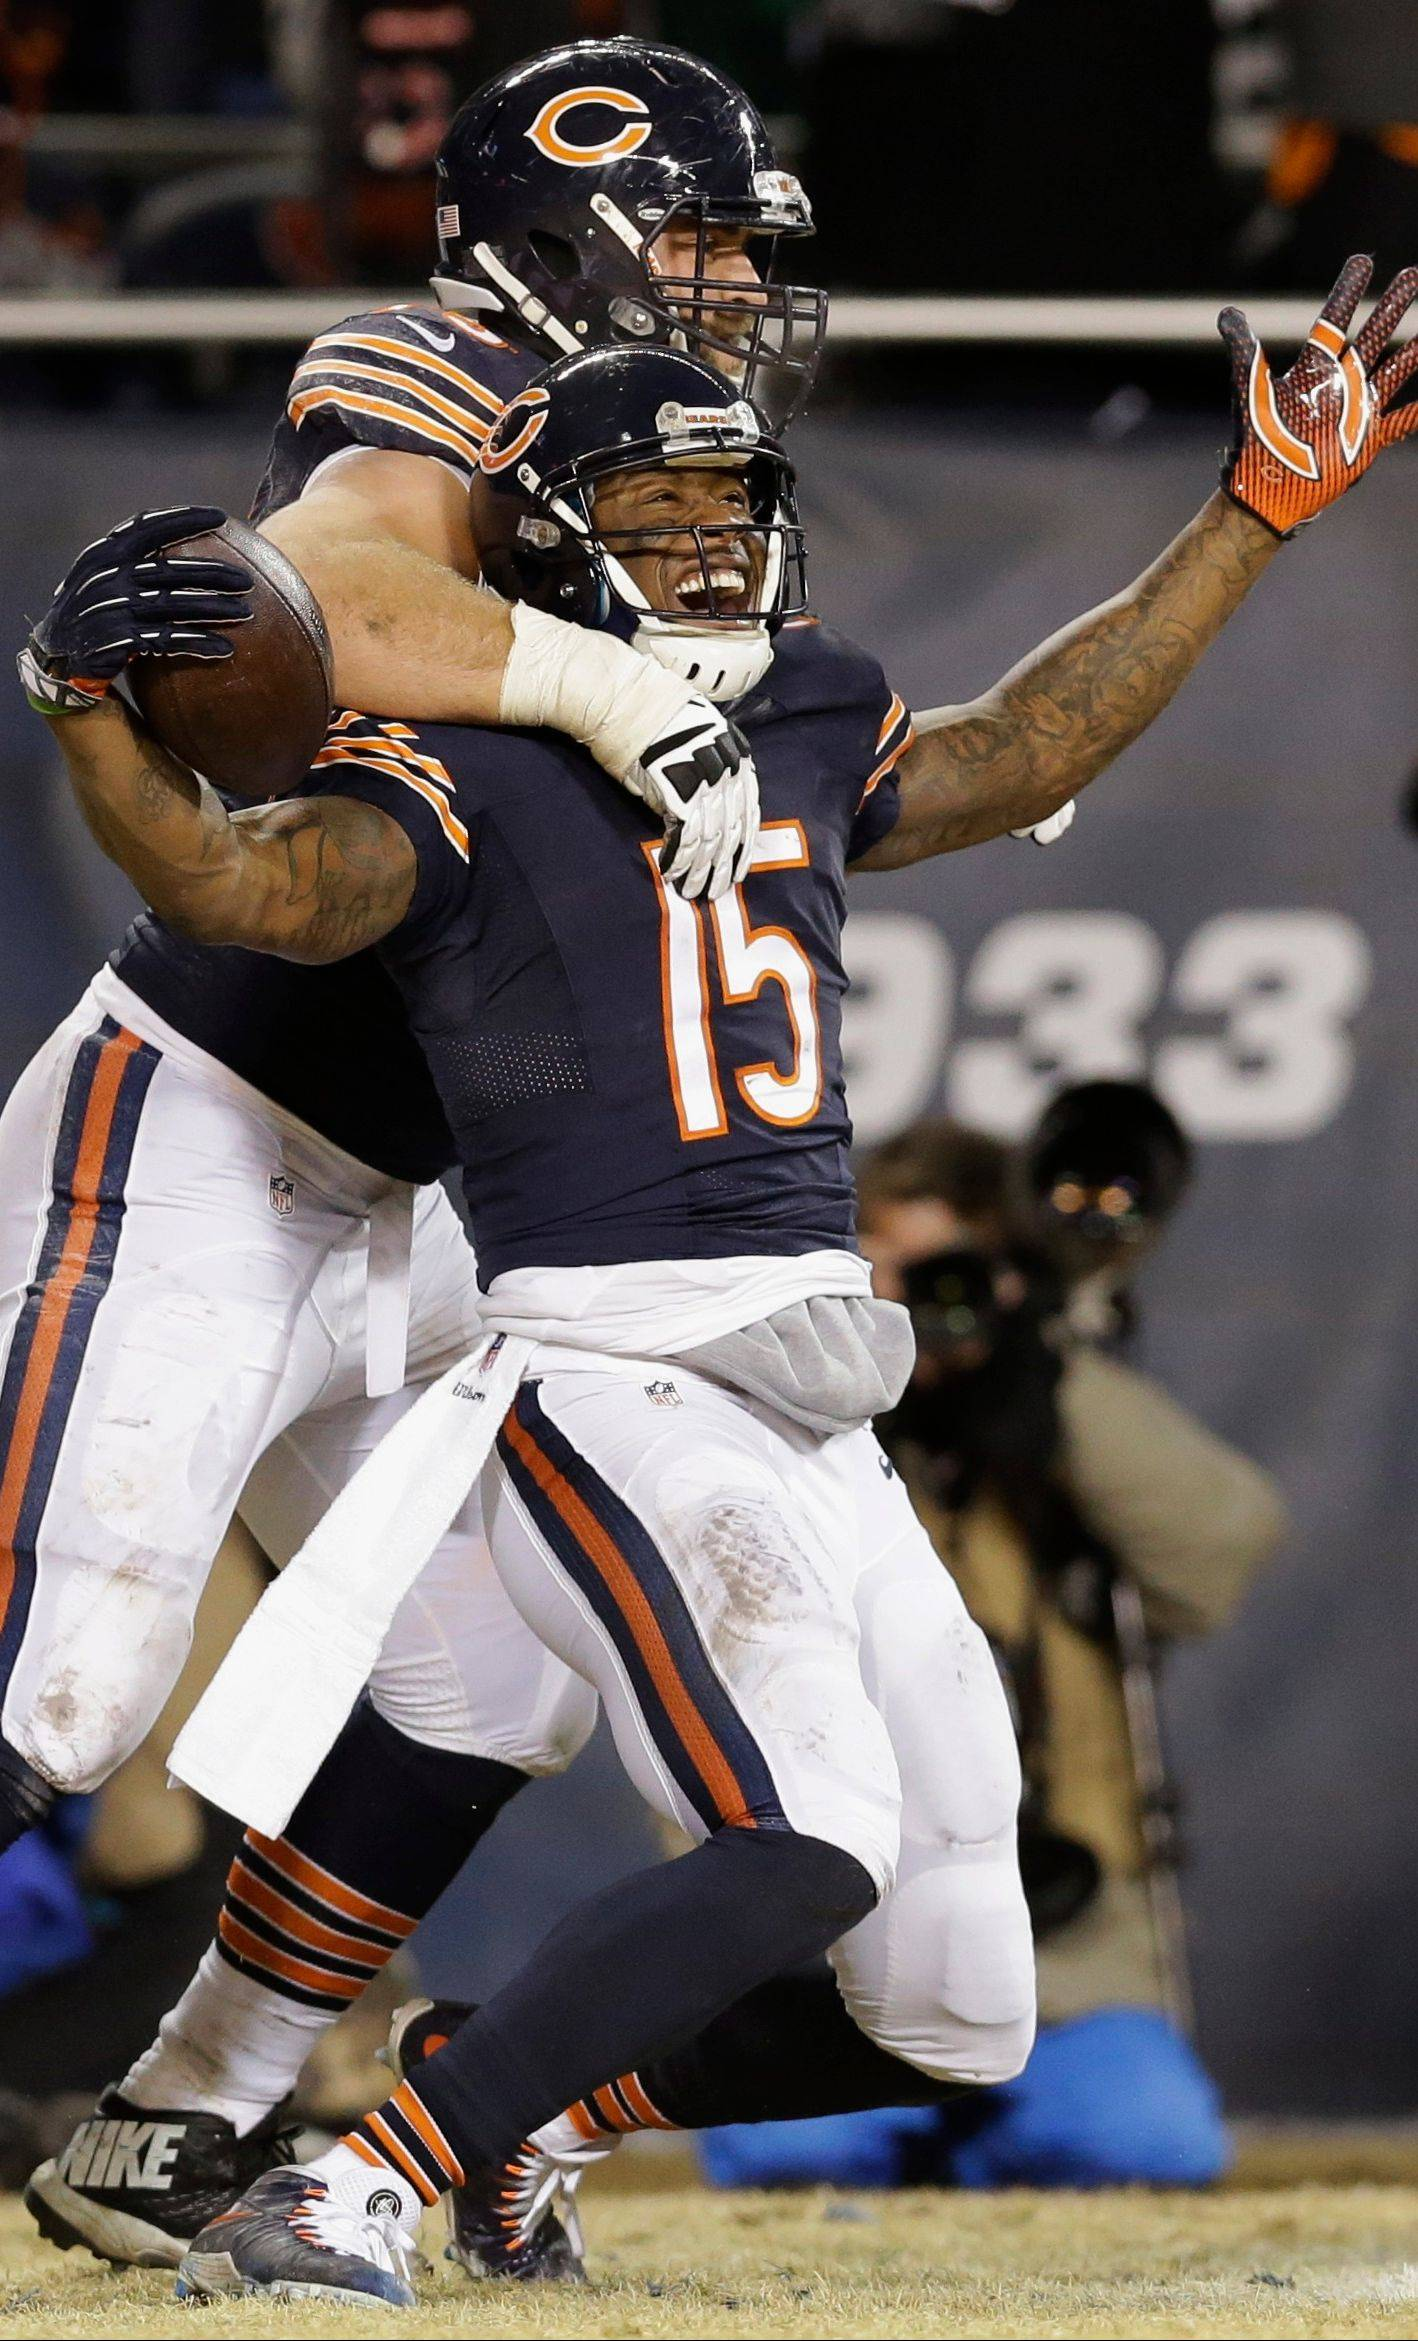 Brandon Marshall celebrates his touchdown reception with offensive guard Kyle Long during the second half of the Bears' loss to Green Bay on Sunday. Marshall and Alshon Jeffery combined for a team-record 2,716 receiving yards this season.